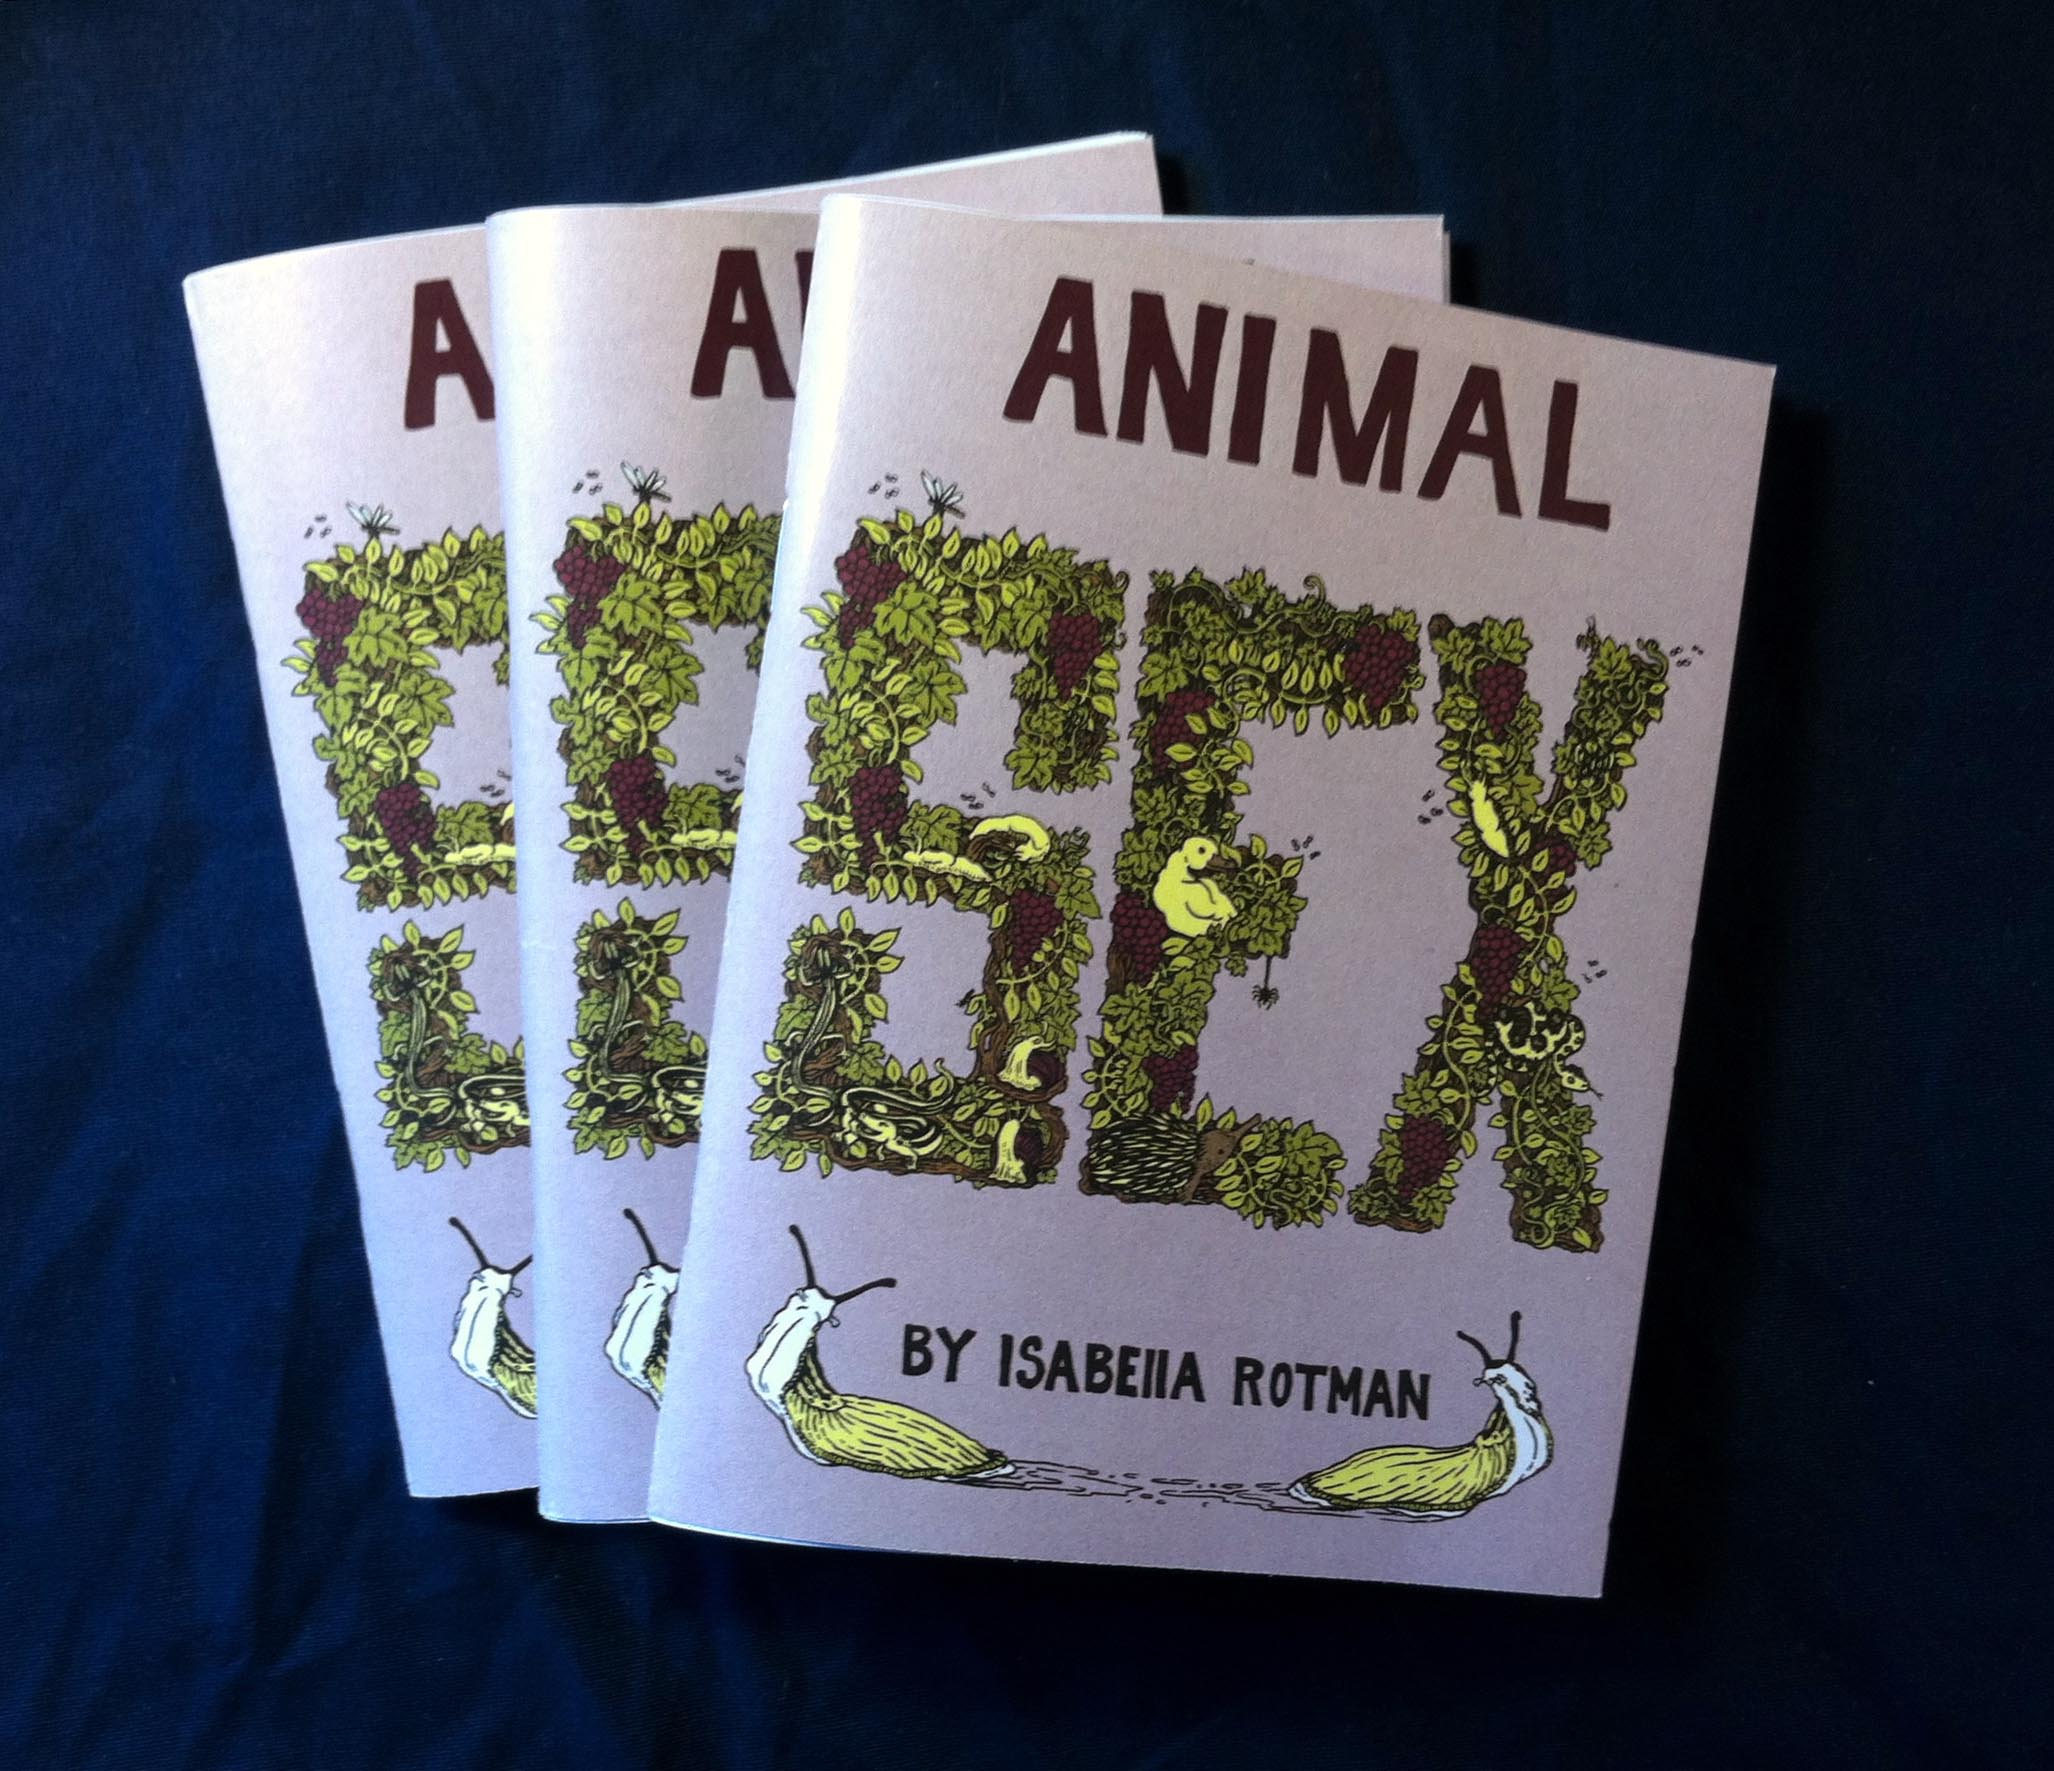 $9, available online and in stores. A compilation of 4 books and never before published material. Original Animal Sex issues are no longer in print.